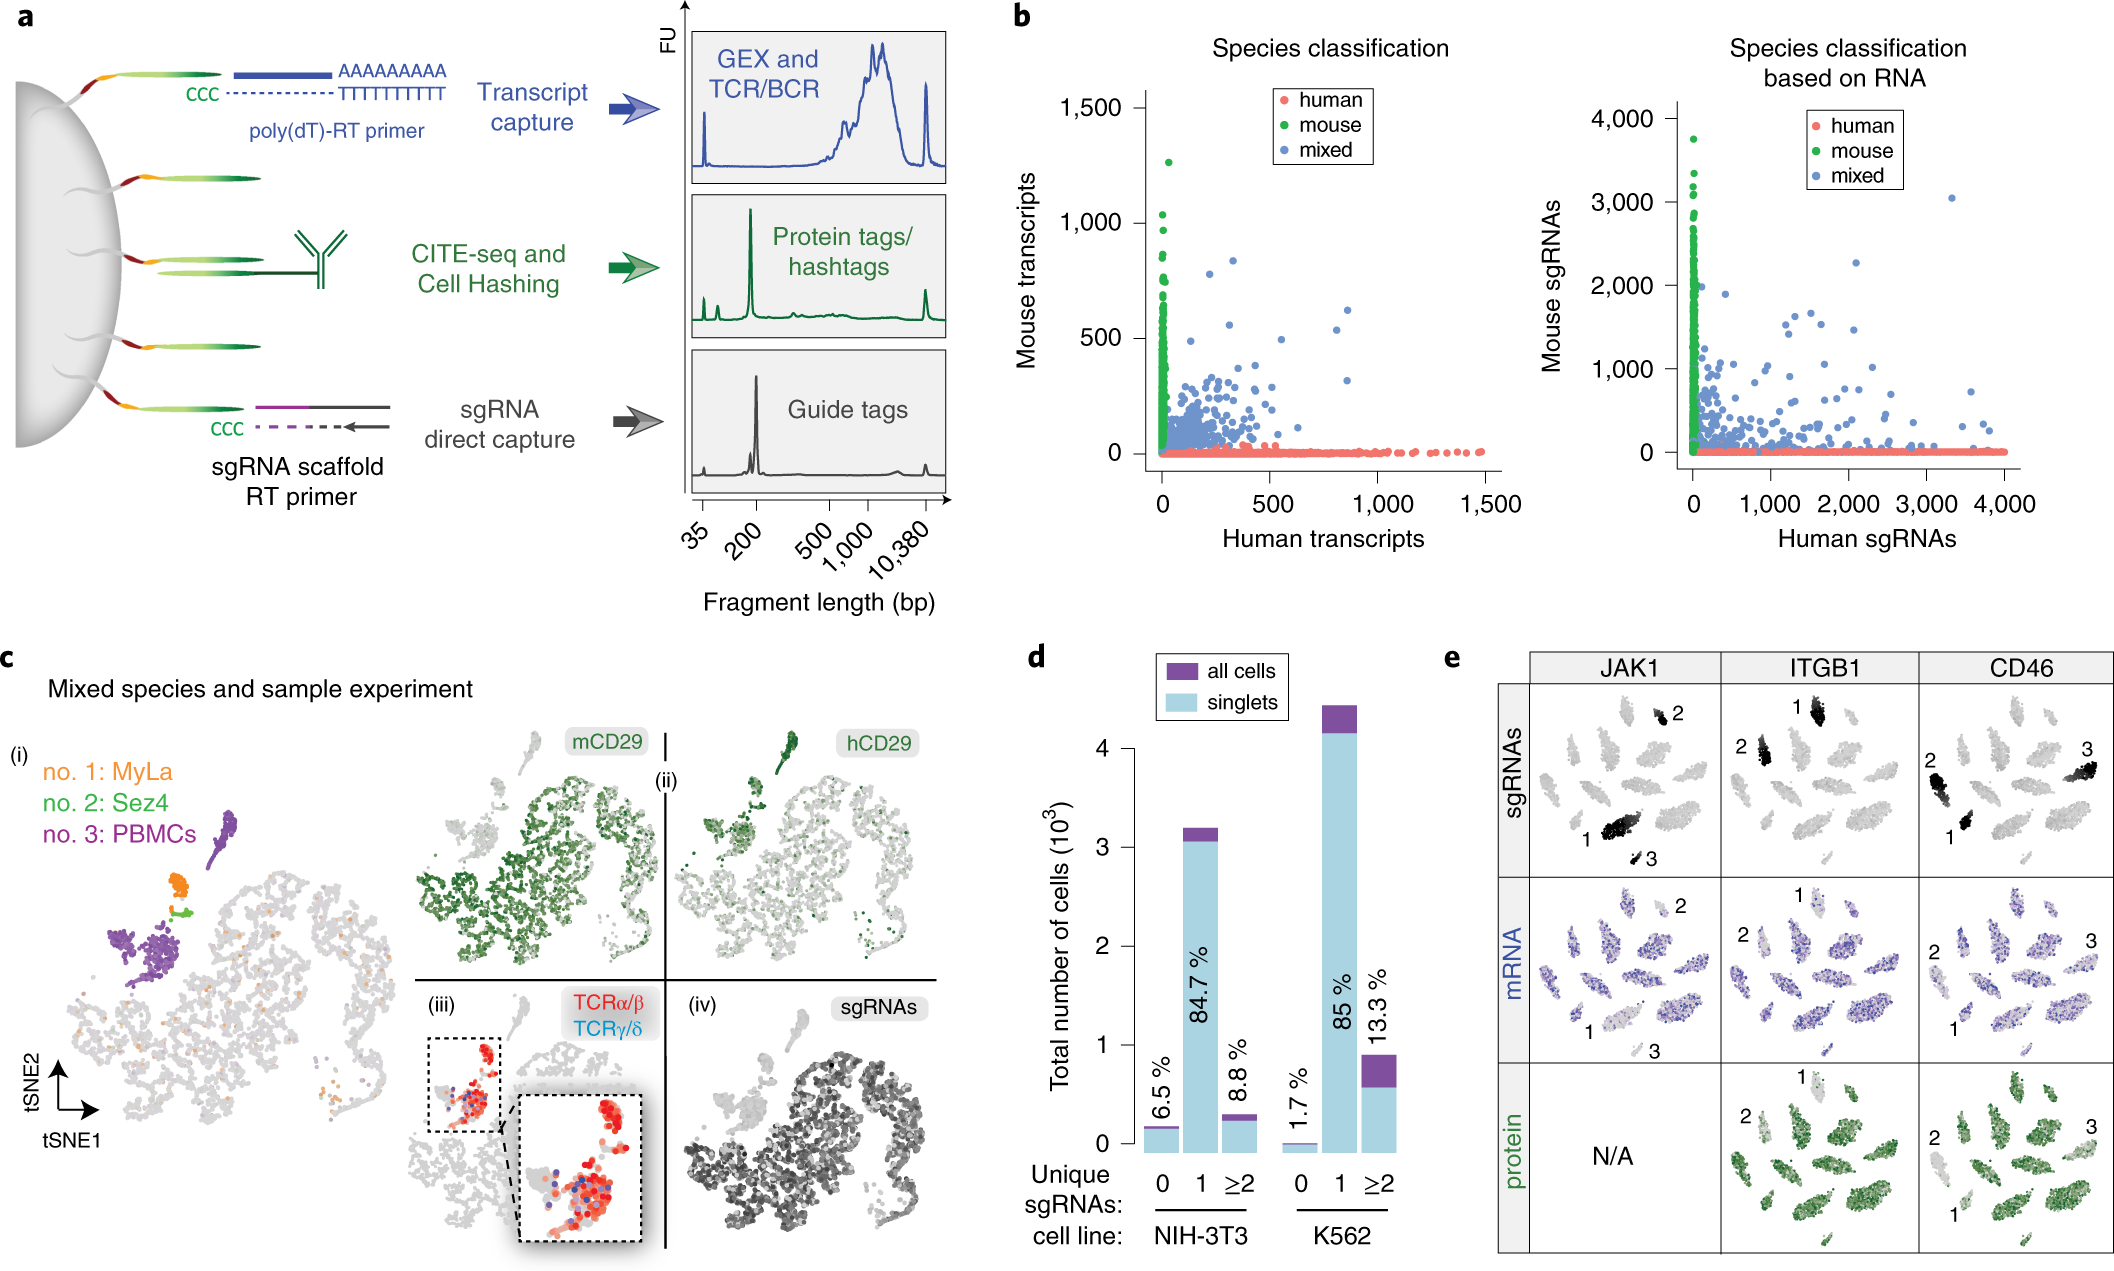 Multiplexed detection of proteins, transcriptomes, clonotypes and